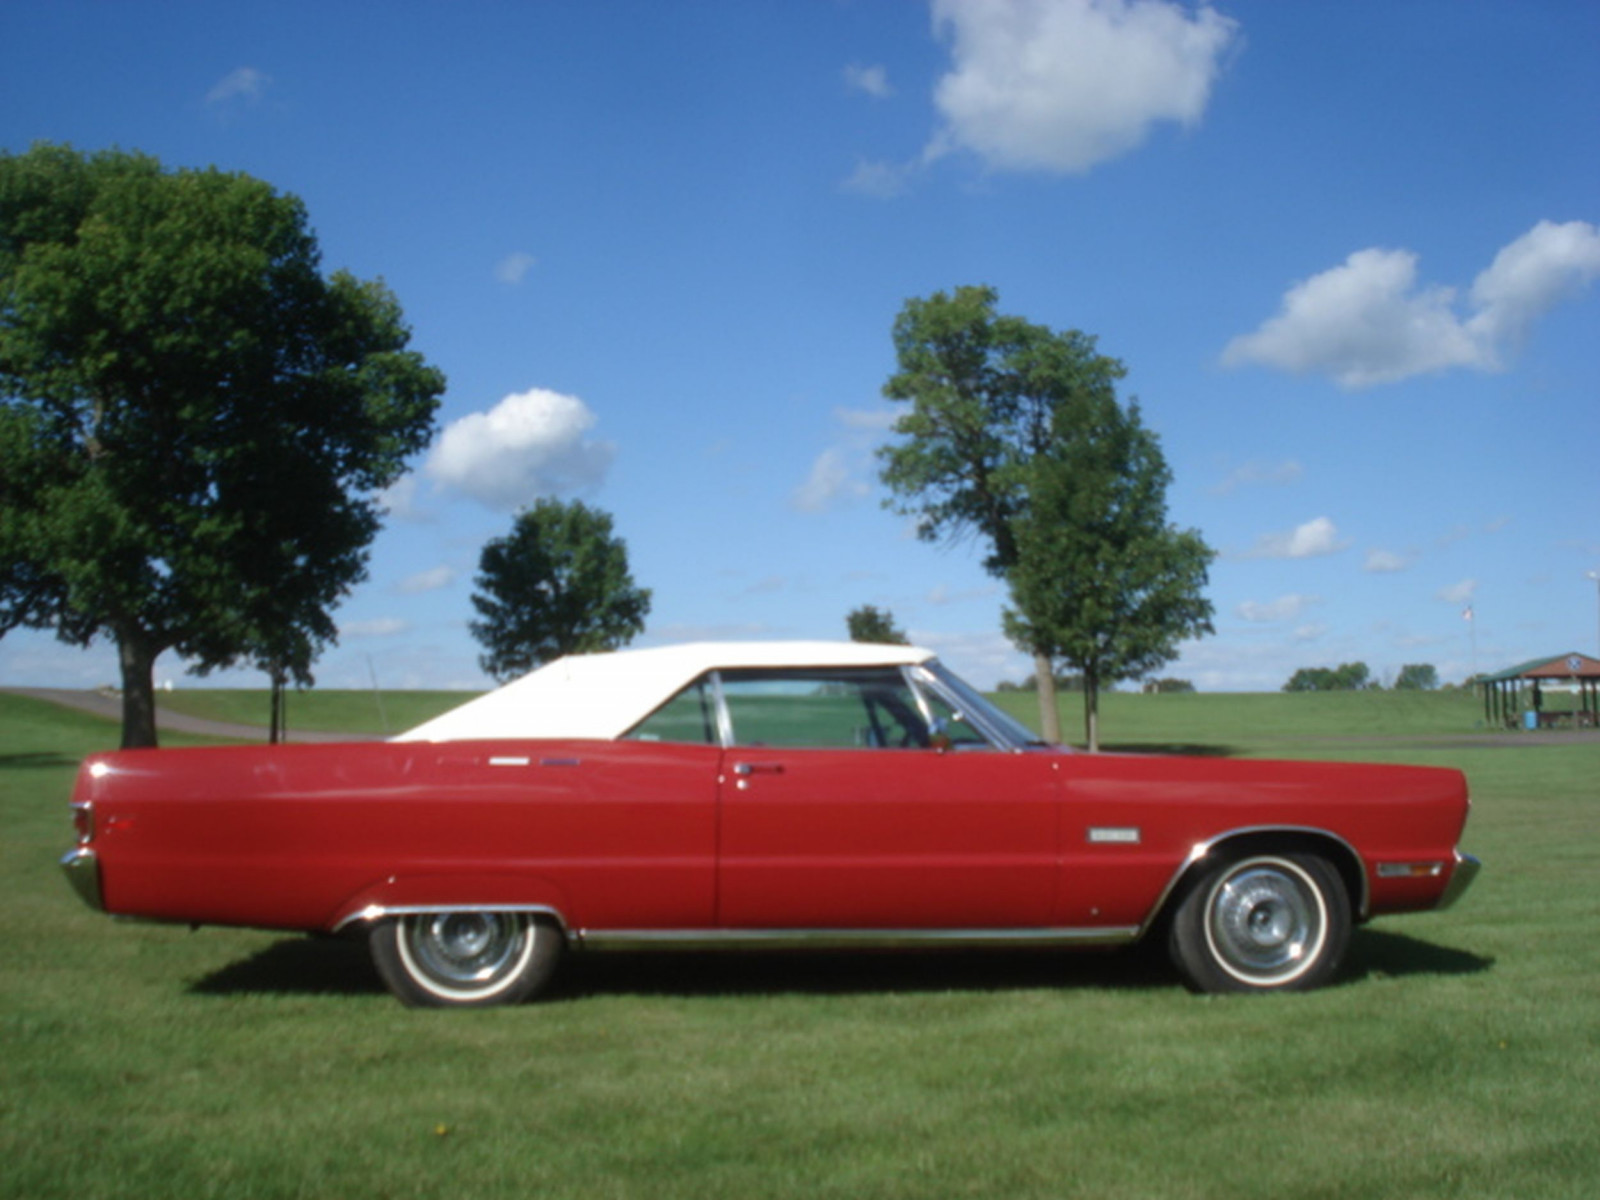 1969 Plymouth Sport Fury Convertible - Image 2